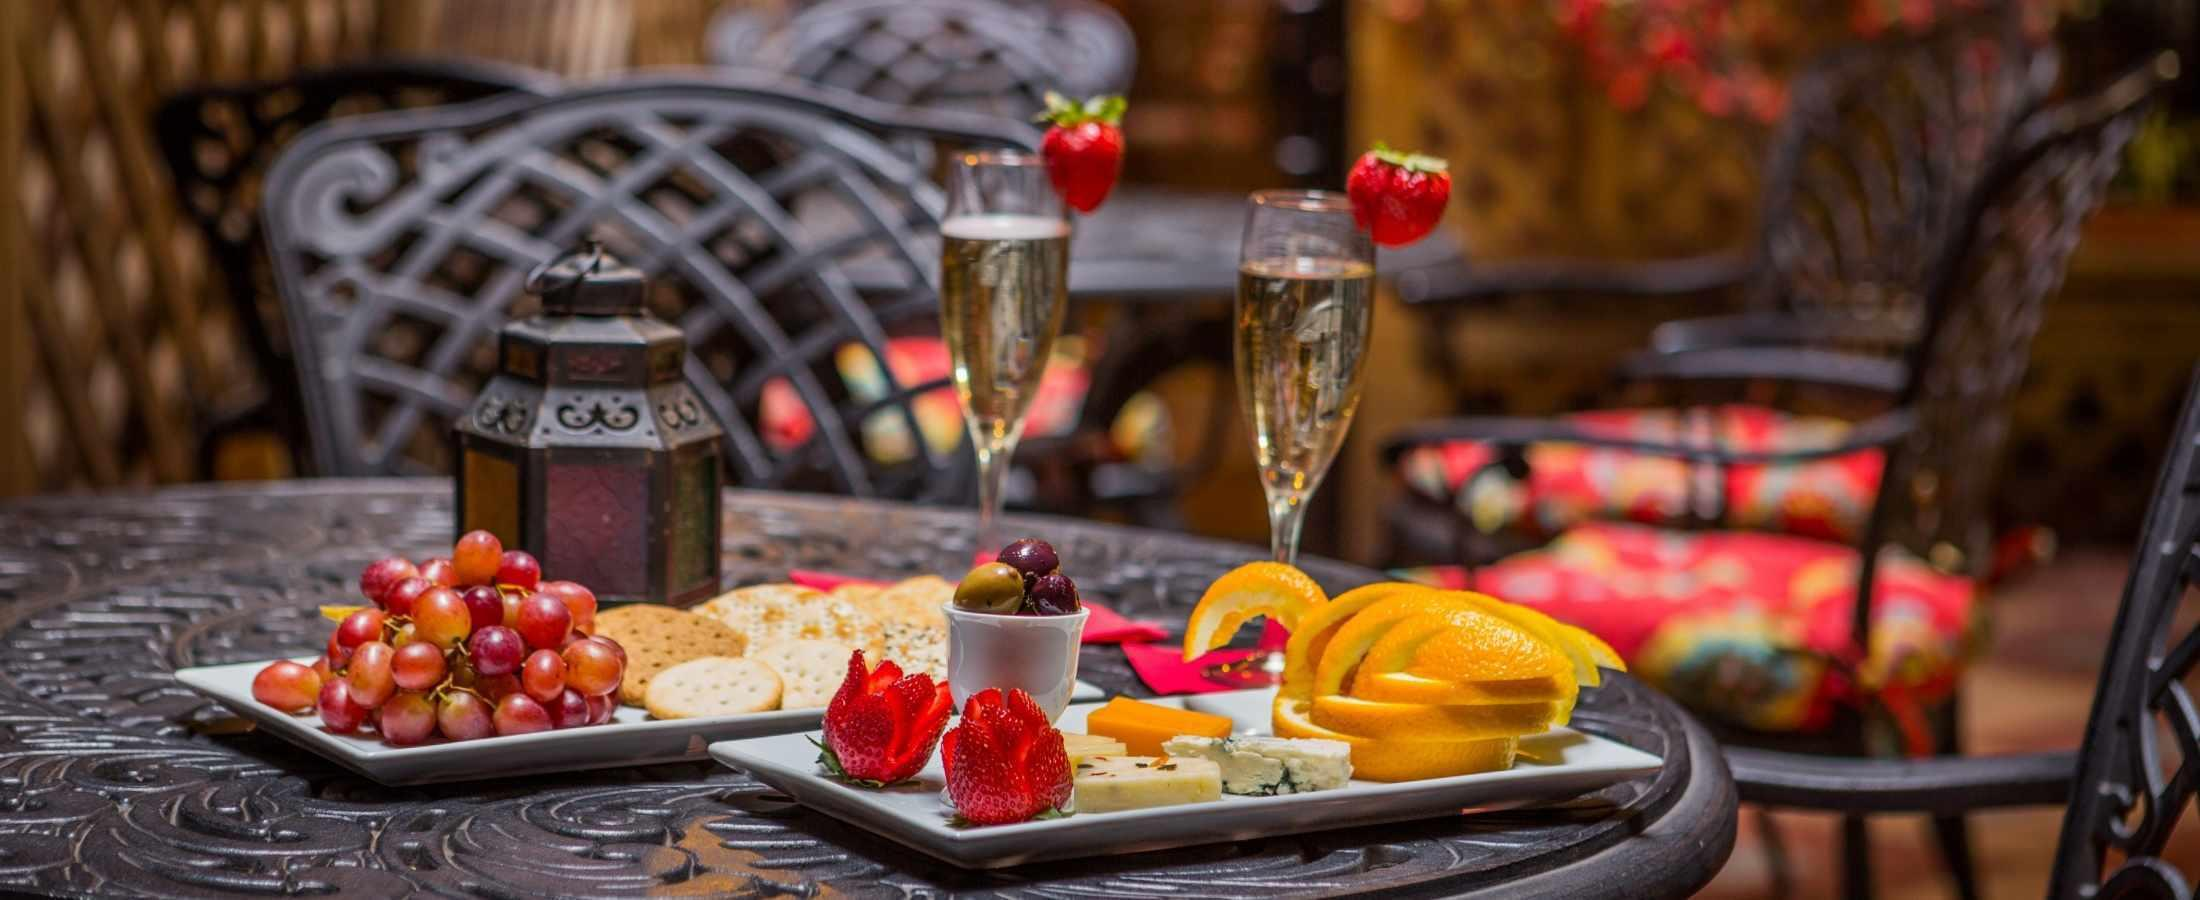 Guests are invited to enjoy our complimentary Wine & Cheese Reception in our Blue Parrot Courtyard!